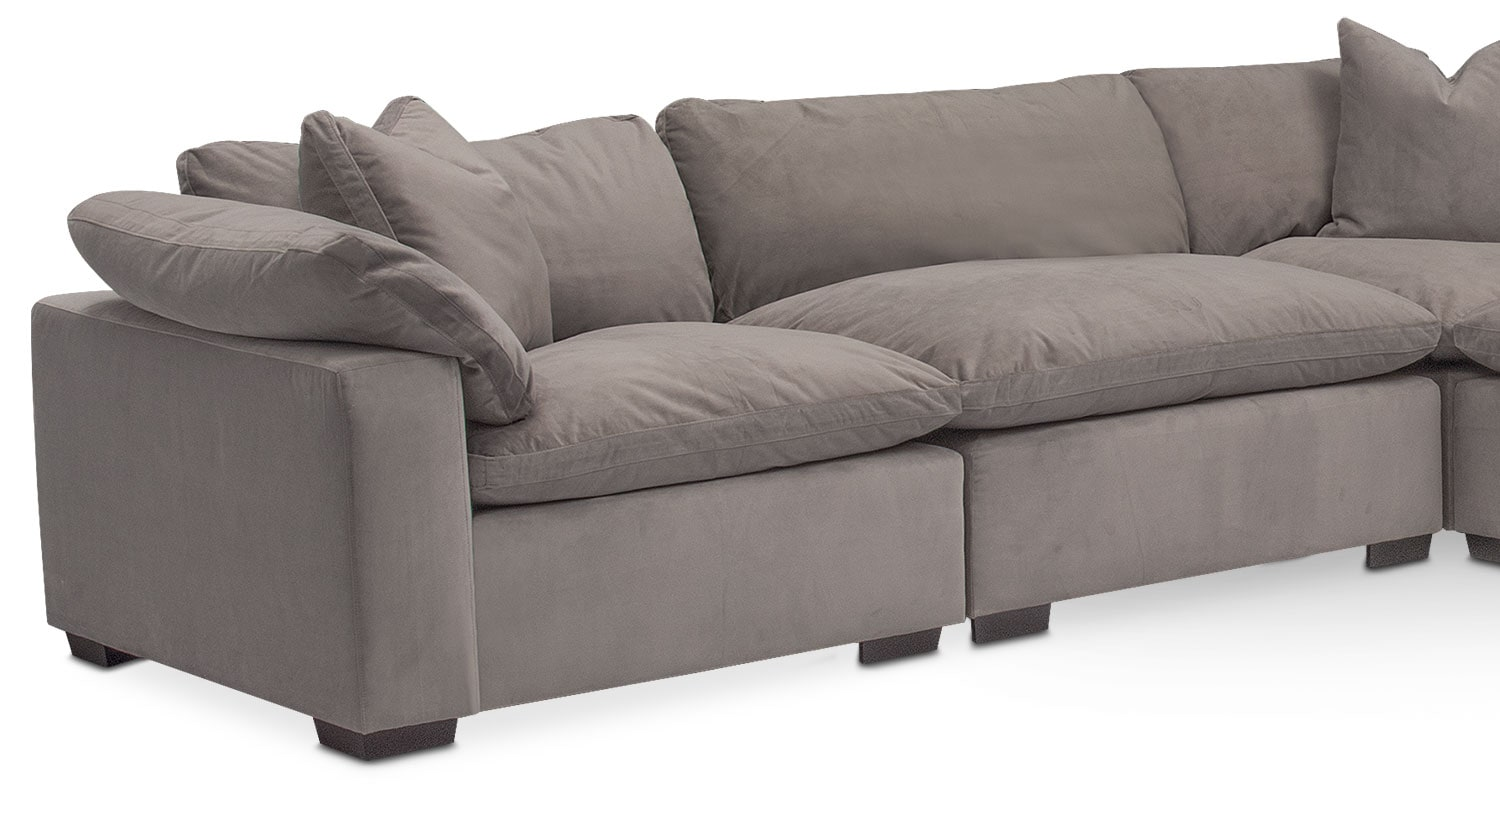 Plush 5 piece sectional gray american signature furniture for 5 piece grey sectional sofa